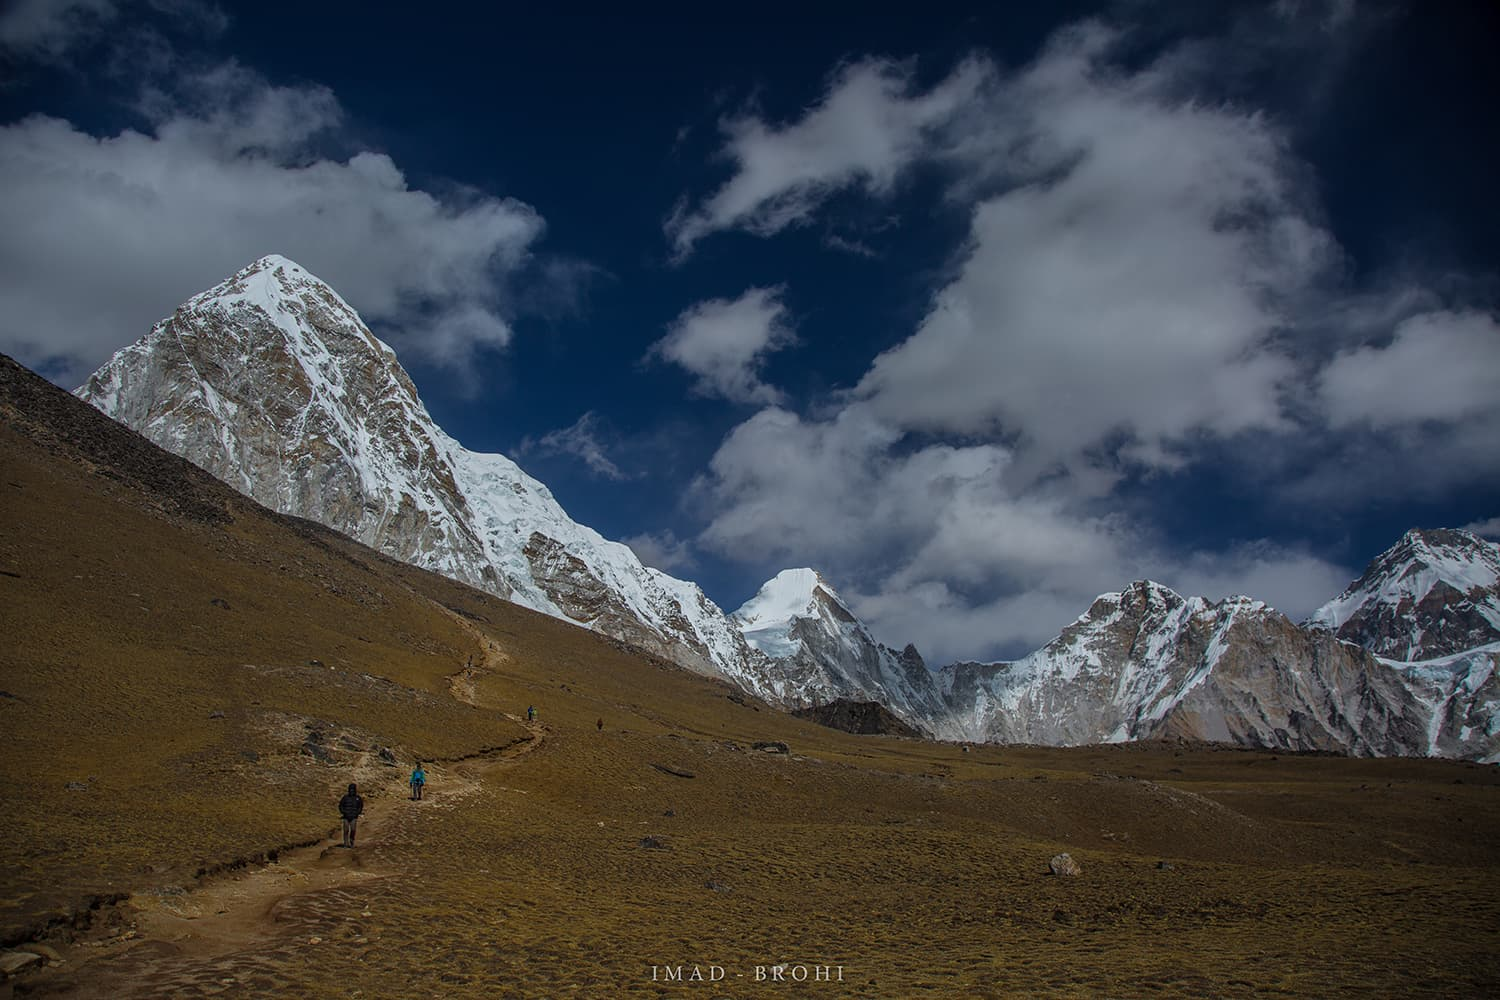 Day 10: The trail to Kala Pathar (5,650m) from where we would get a clear view of Mount Everest.